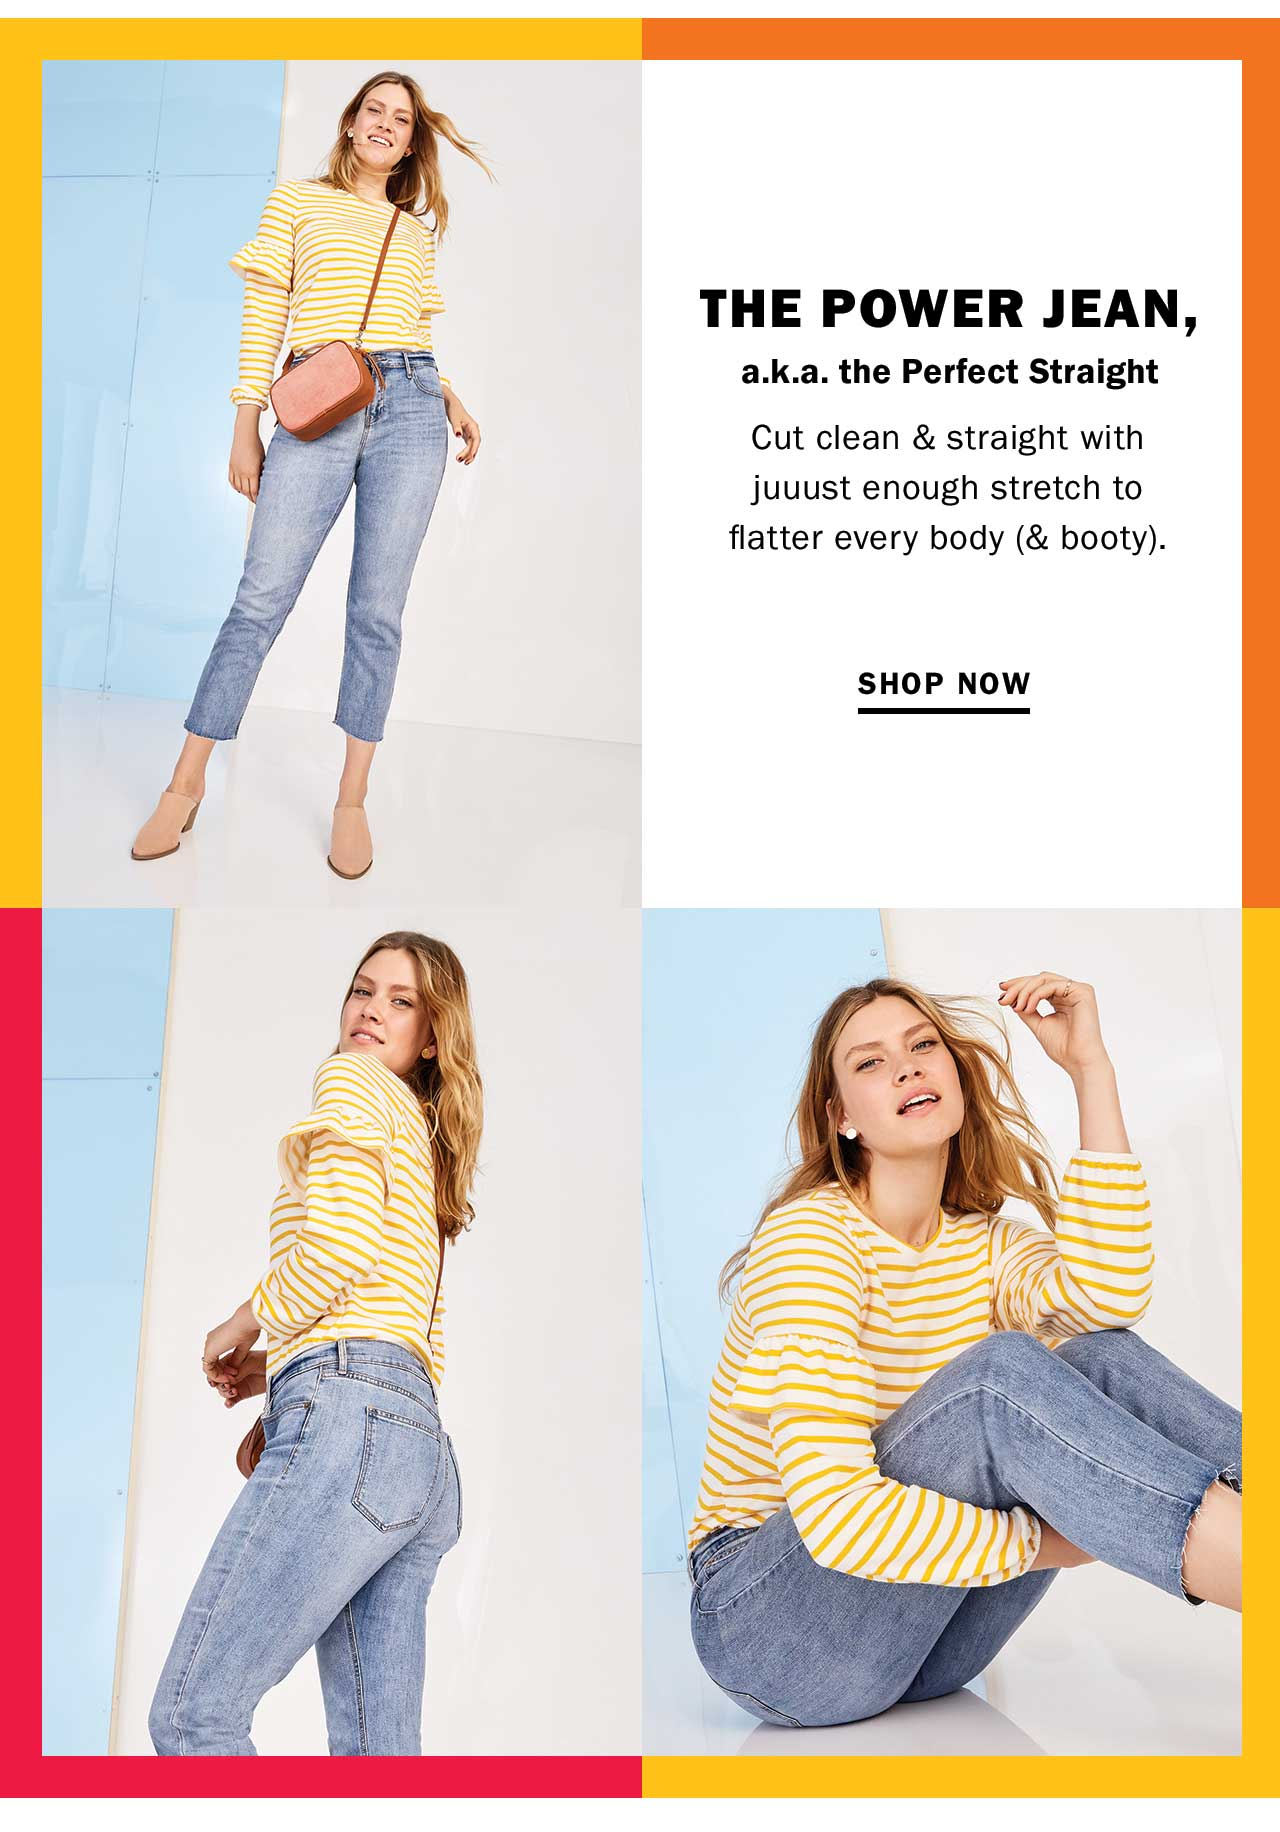 THE POWER JEAN, a.k.a. the Perfect Straight | SHOP NOW